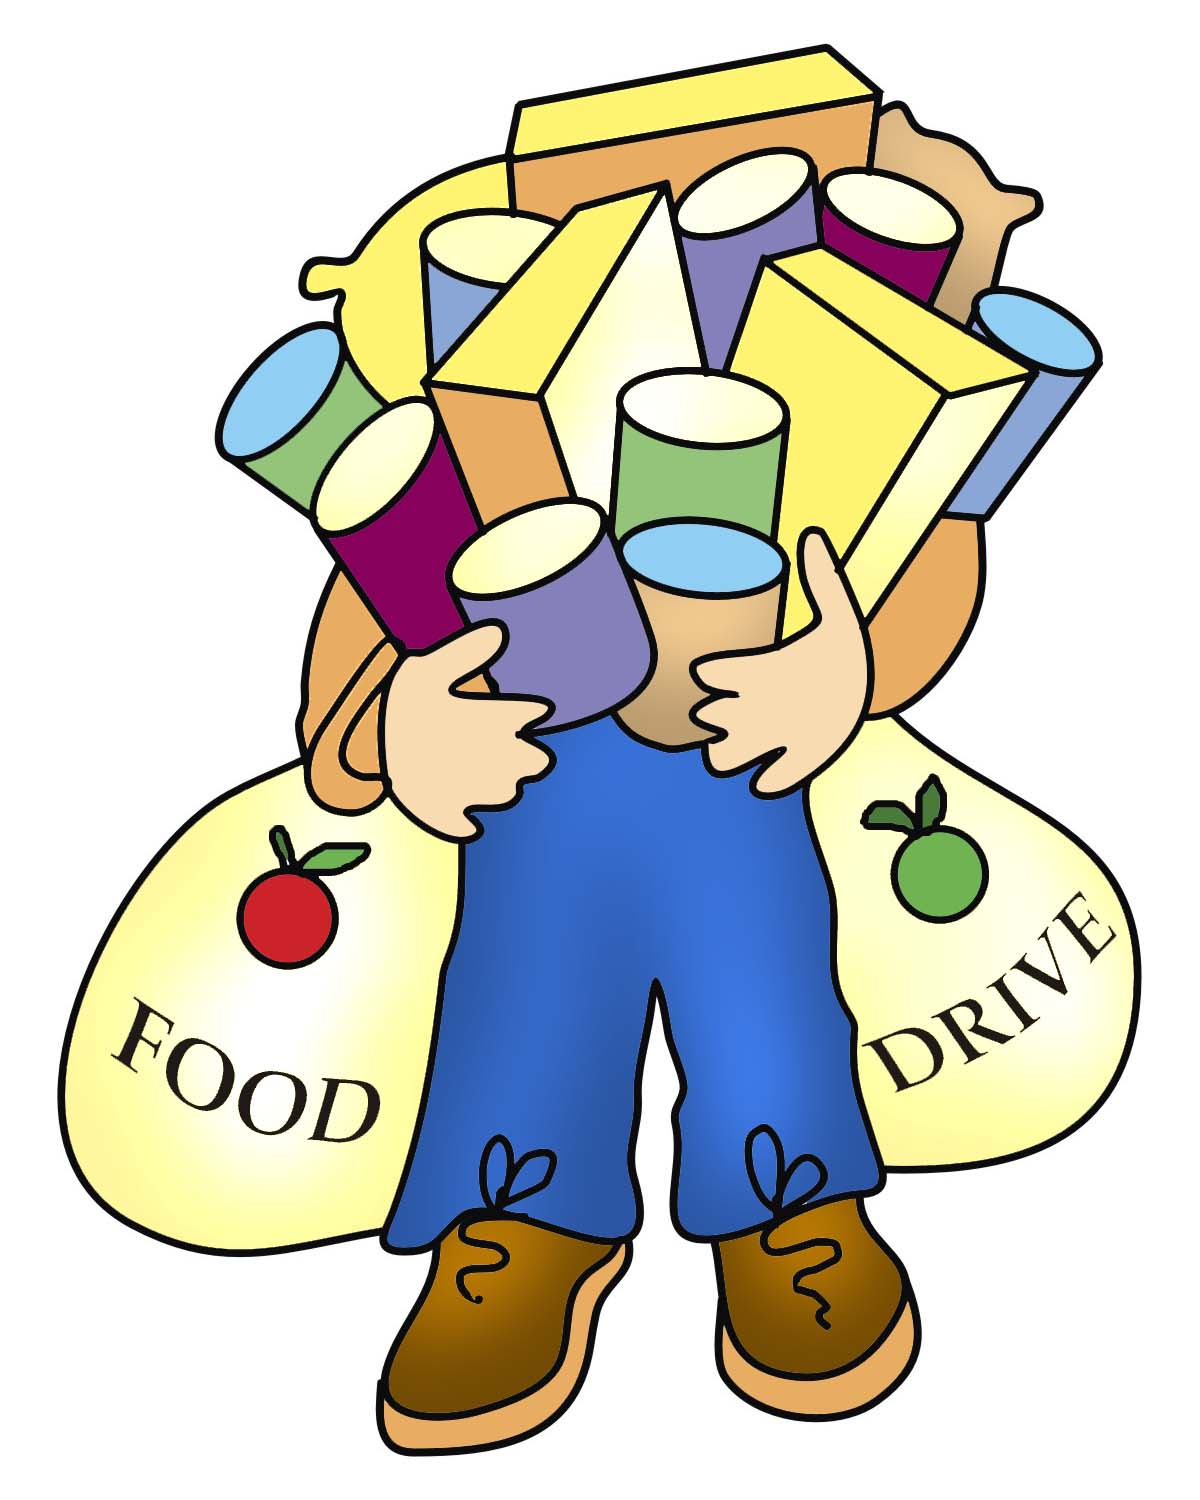 can food bank clip art clipart panda free clipart images rh clipartpanda com food pantry needs clipart mobile food pantry clipart